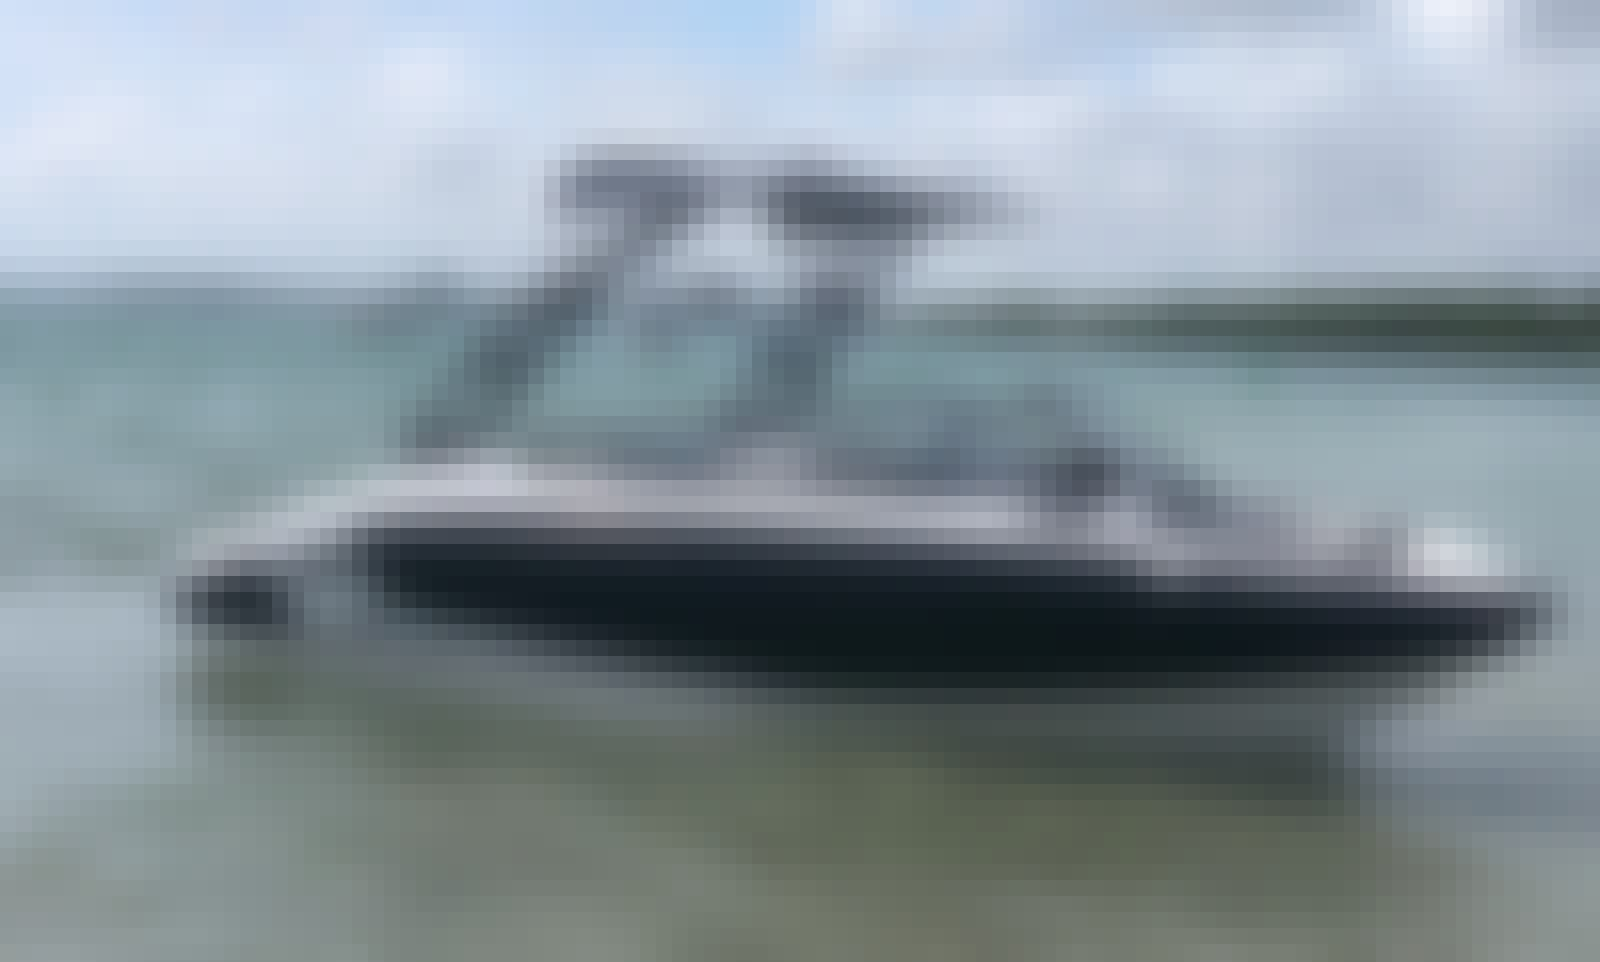 New 2019 Yamaha Boat Perfect for the Sandbar!! Rent for half to full day!